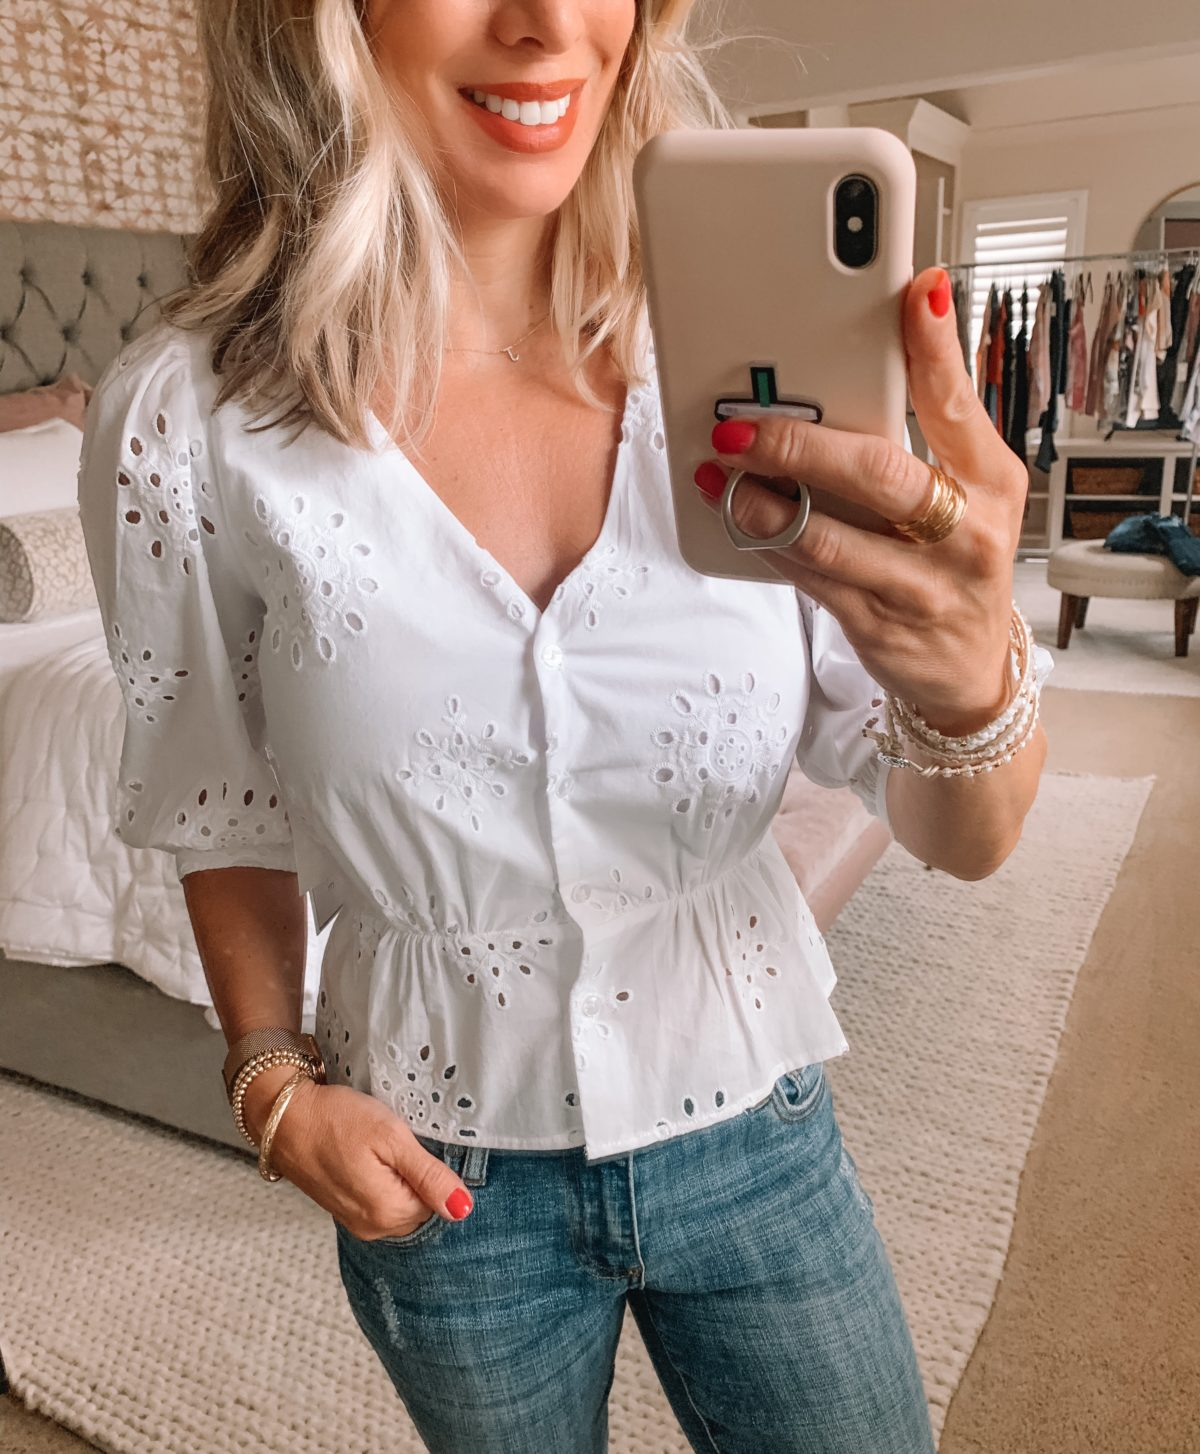 Dressing Room Finds Nordstrom and Target, White Eyelet Peplum Top, Kut from Kloth Jeans